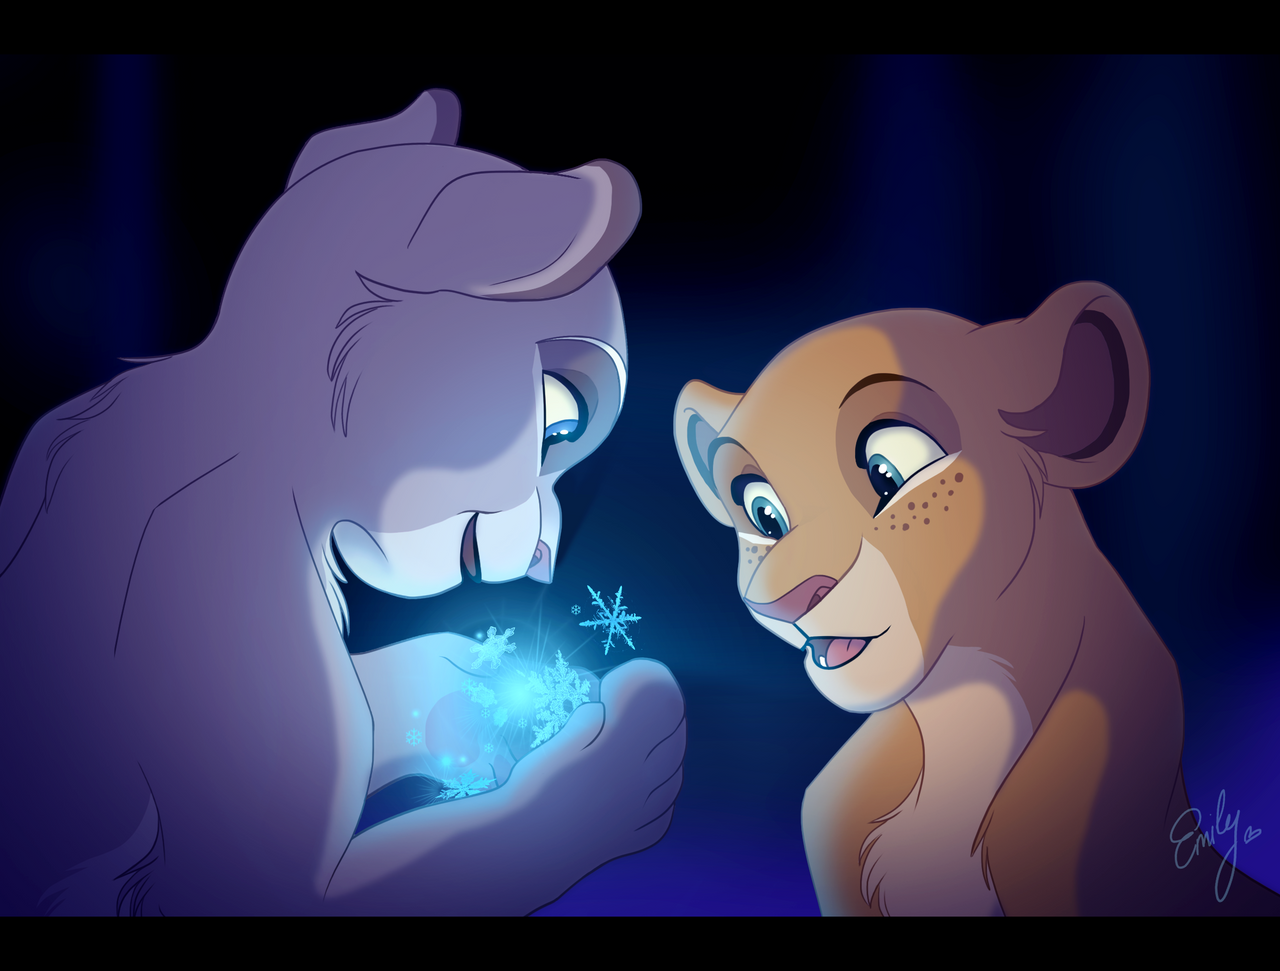 do_the_magic____elsa_and_anna_by_shimiart-d7i3o24.png